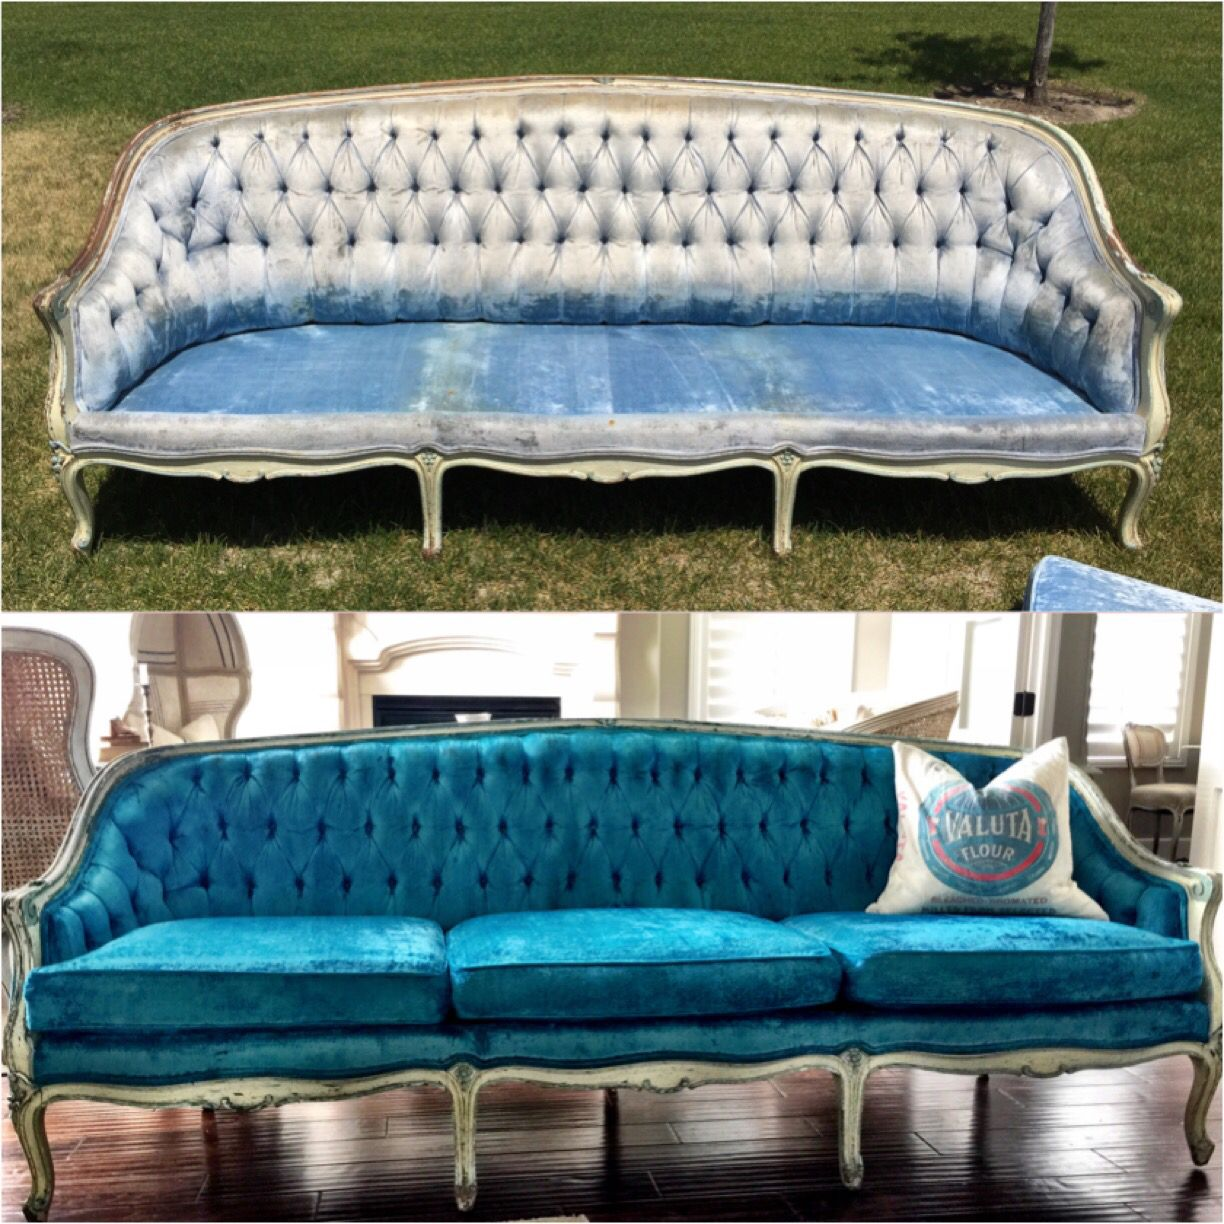 Before After Of A Vintage Sofa I Dyed Using Rit Dye Vintage Sofa Painted Sofa Upholstered Furniture